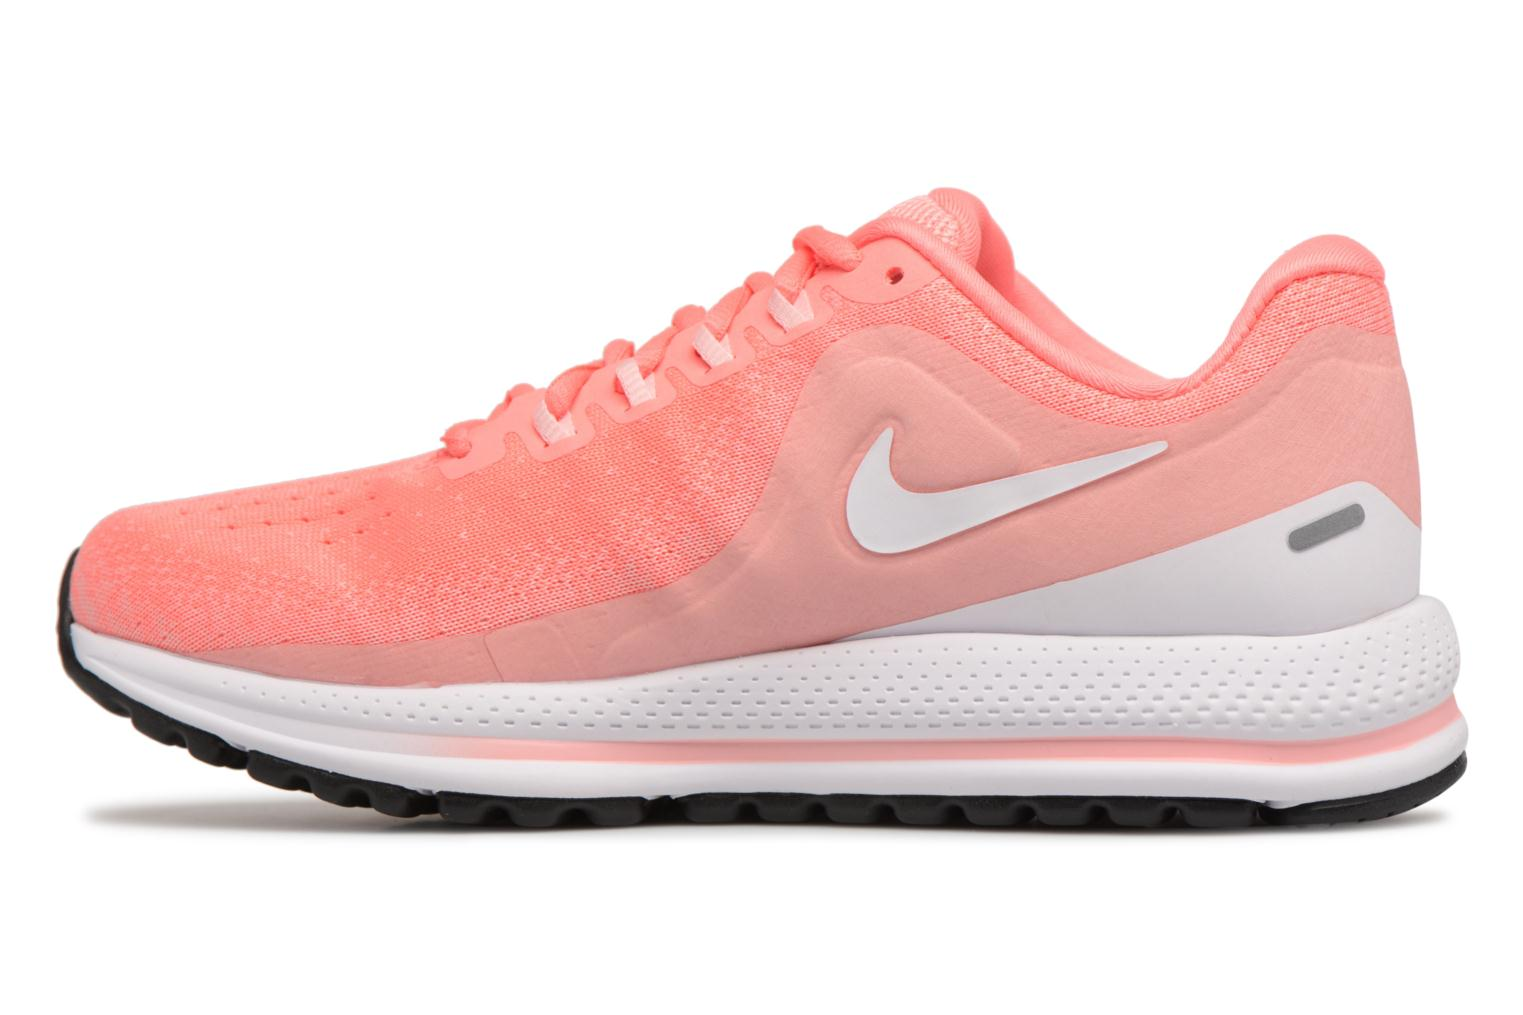 Chaussures de sport Nike Wmns Nike Air Zoom Vomero 13 Rose vue face